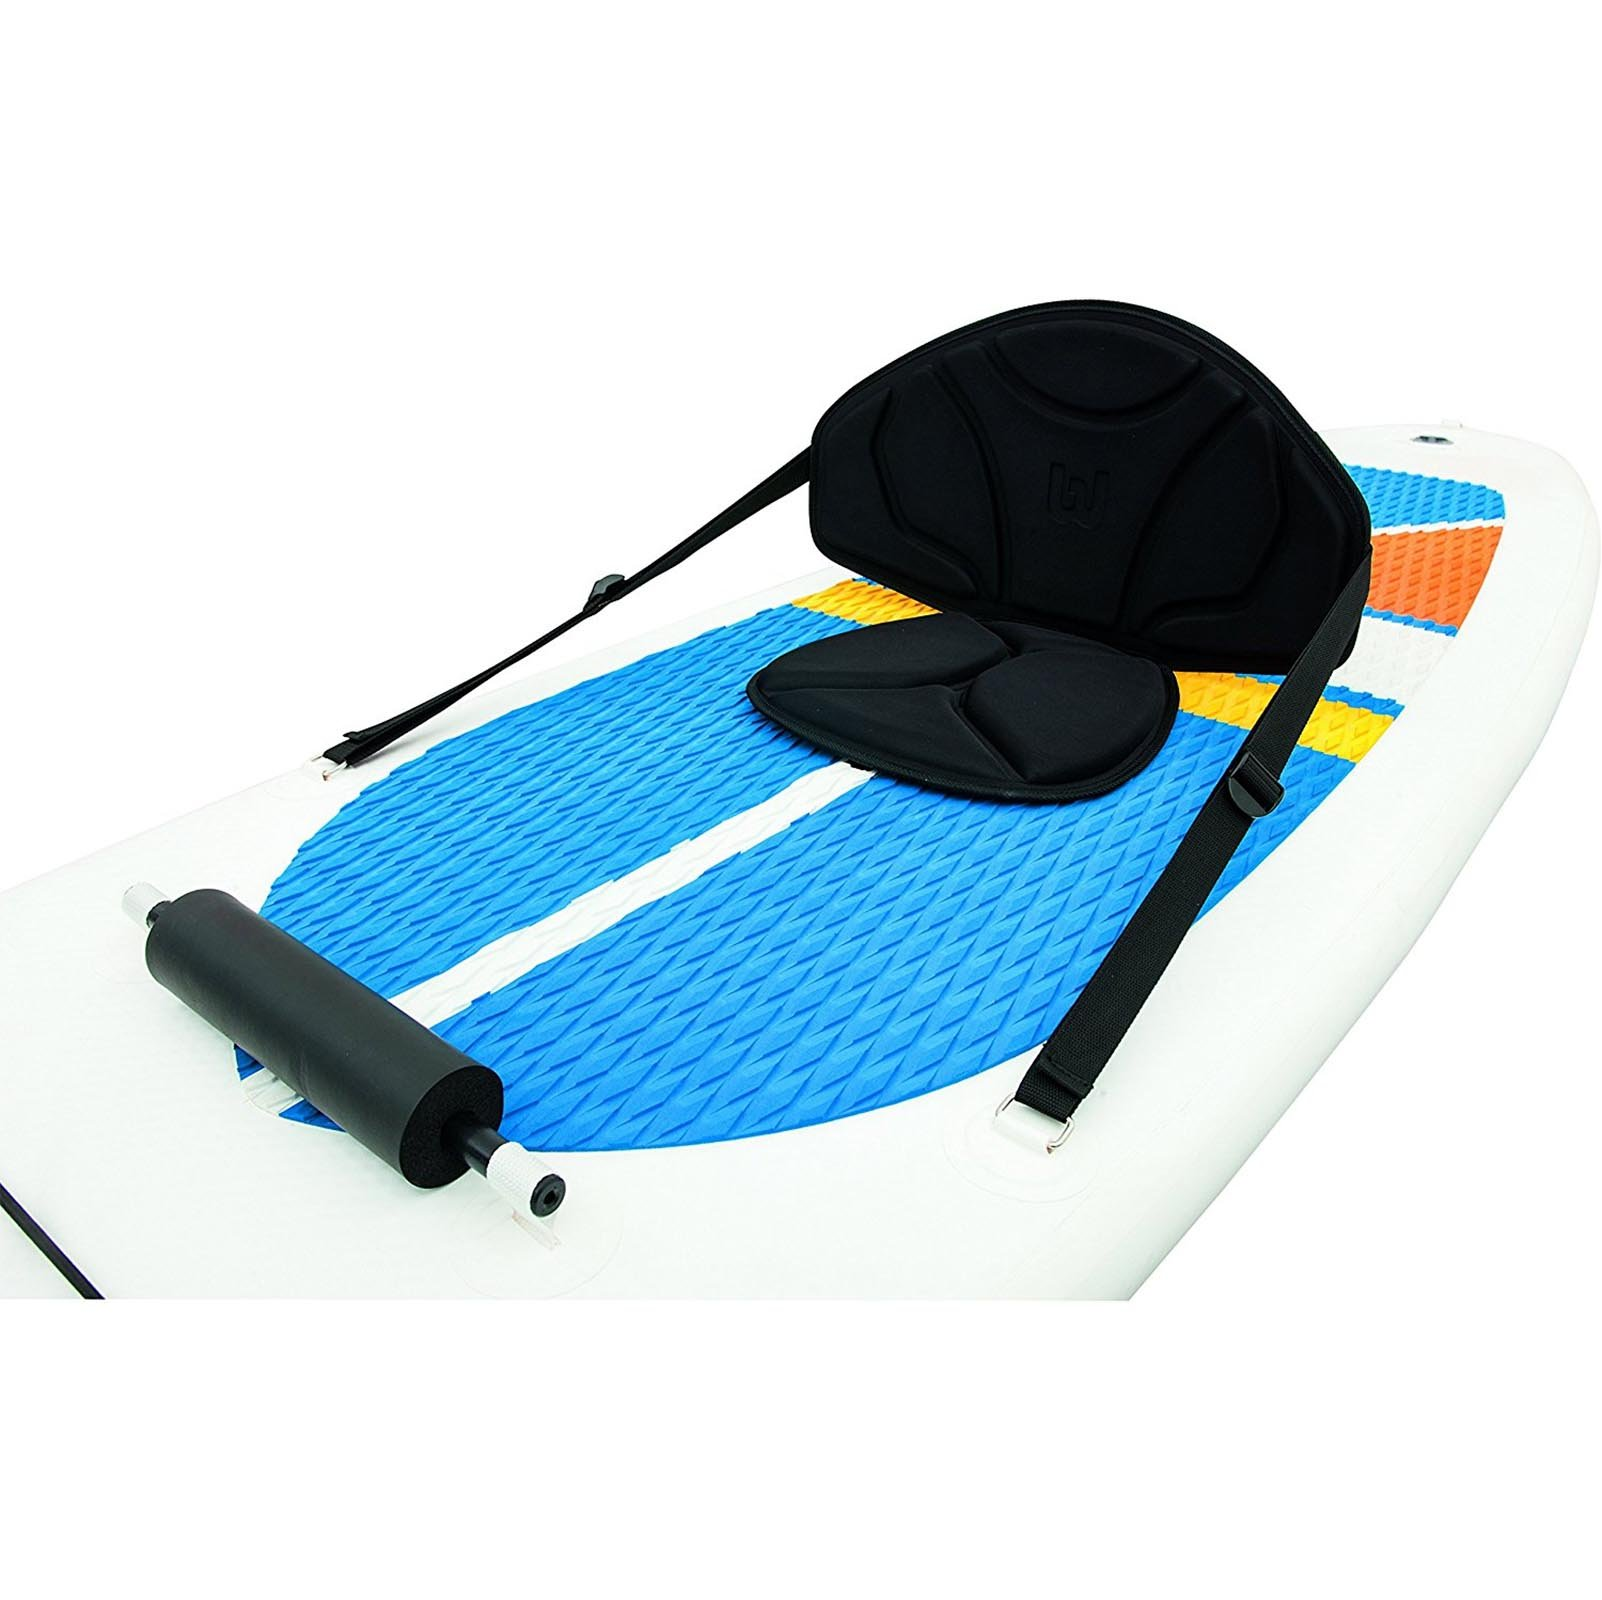 HydroForce White Cap Inflatable Stand Up Paddleboard SUP and Kayak 10' by Bestway (Image #4)